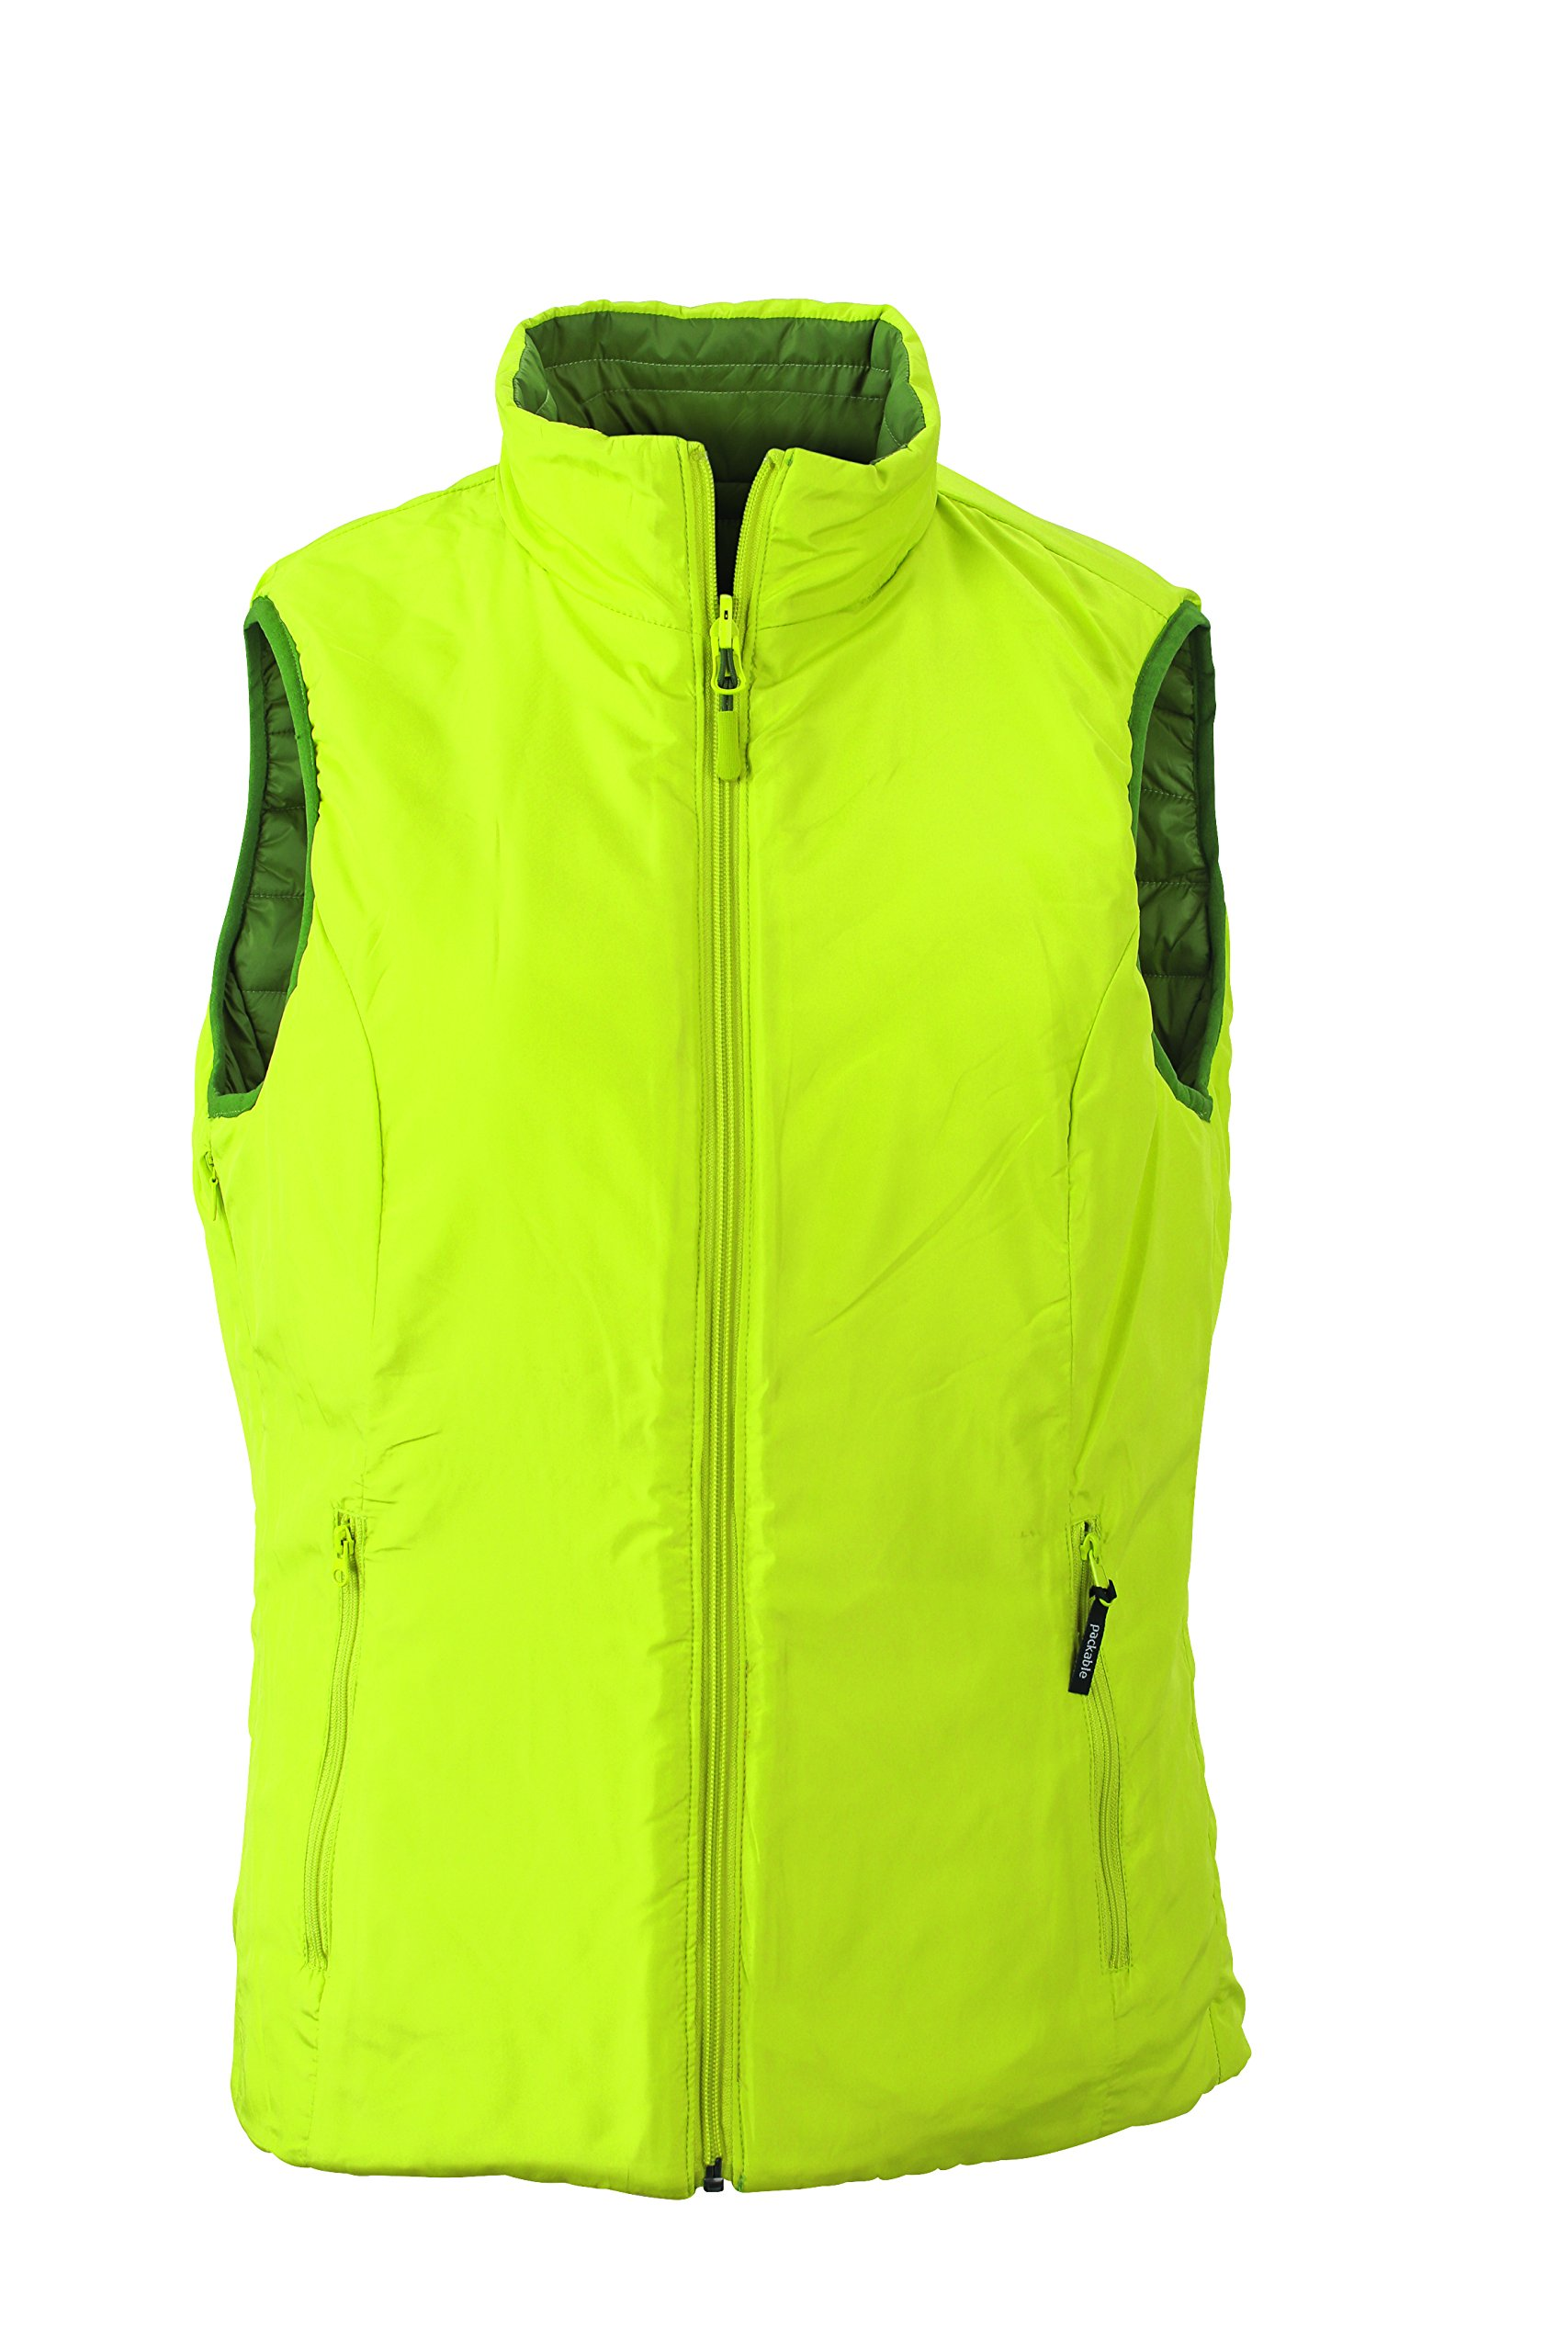 81la1OCuk5L - James & Nicholson Women's Lightweight Vest Outdoor